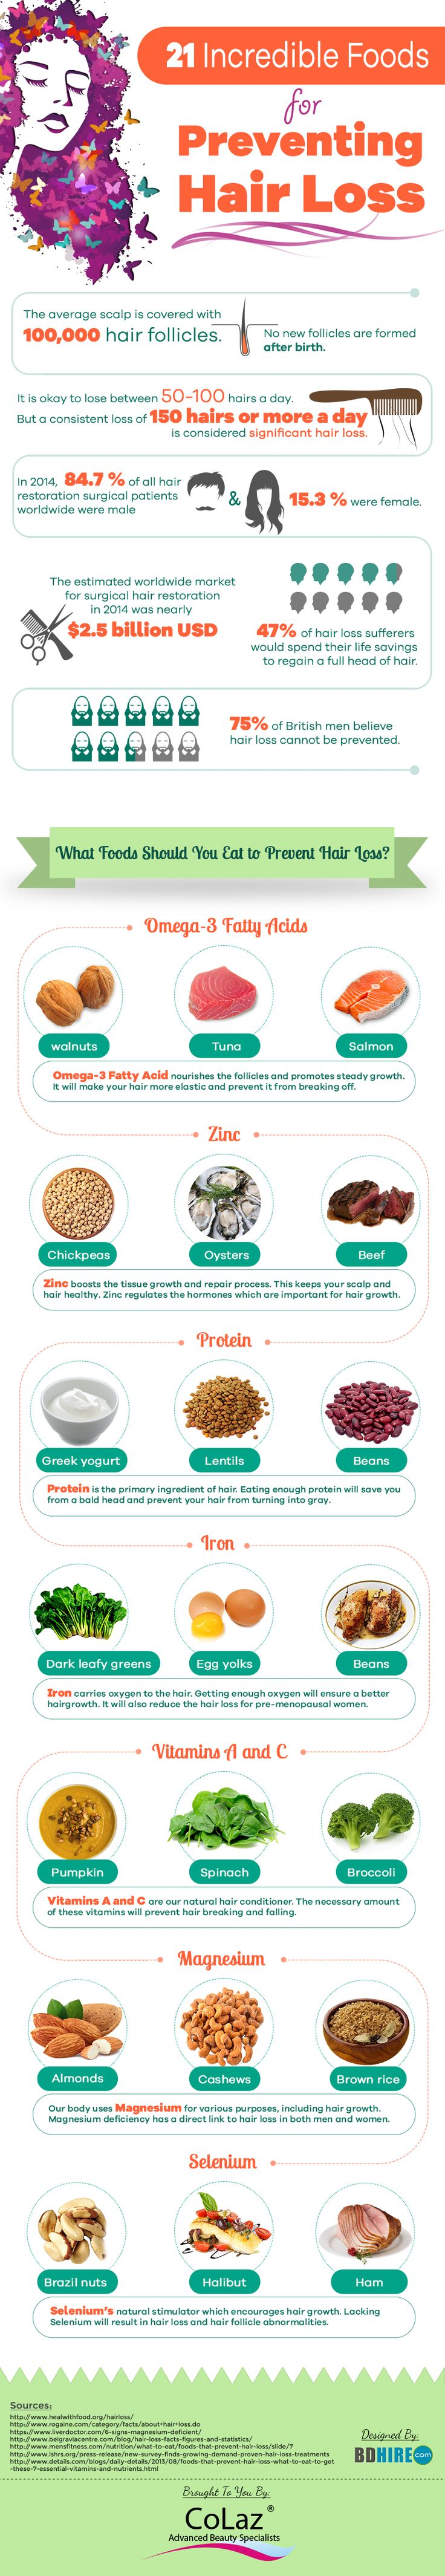 21 Incredible Foods For Preventing Hair Loss #Infographic #Food #Health